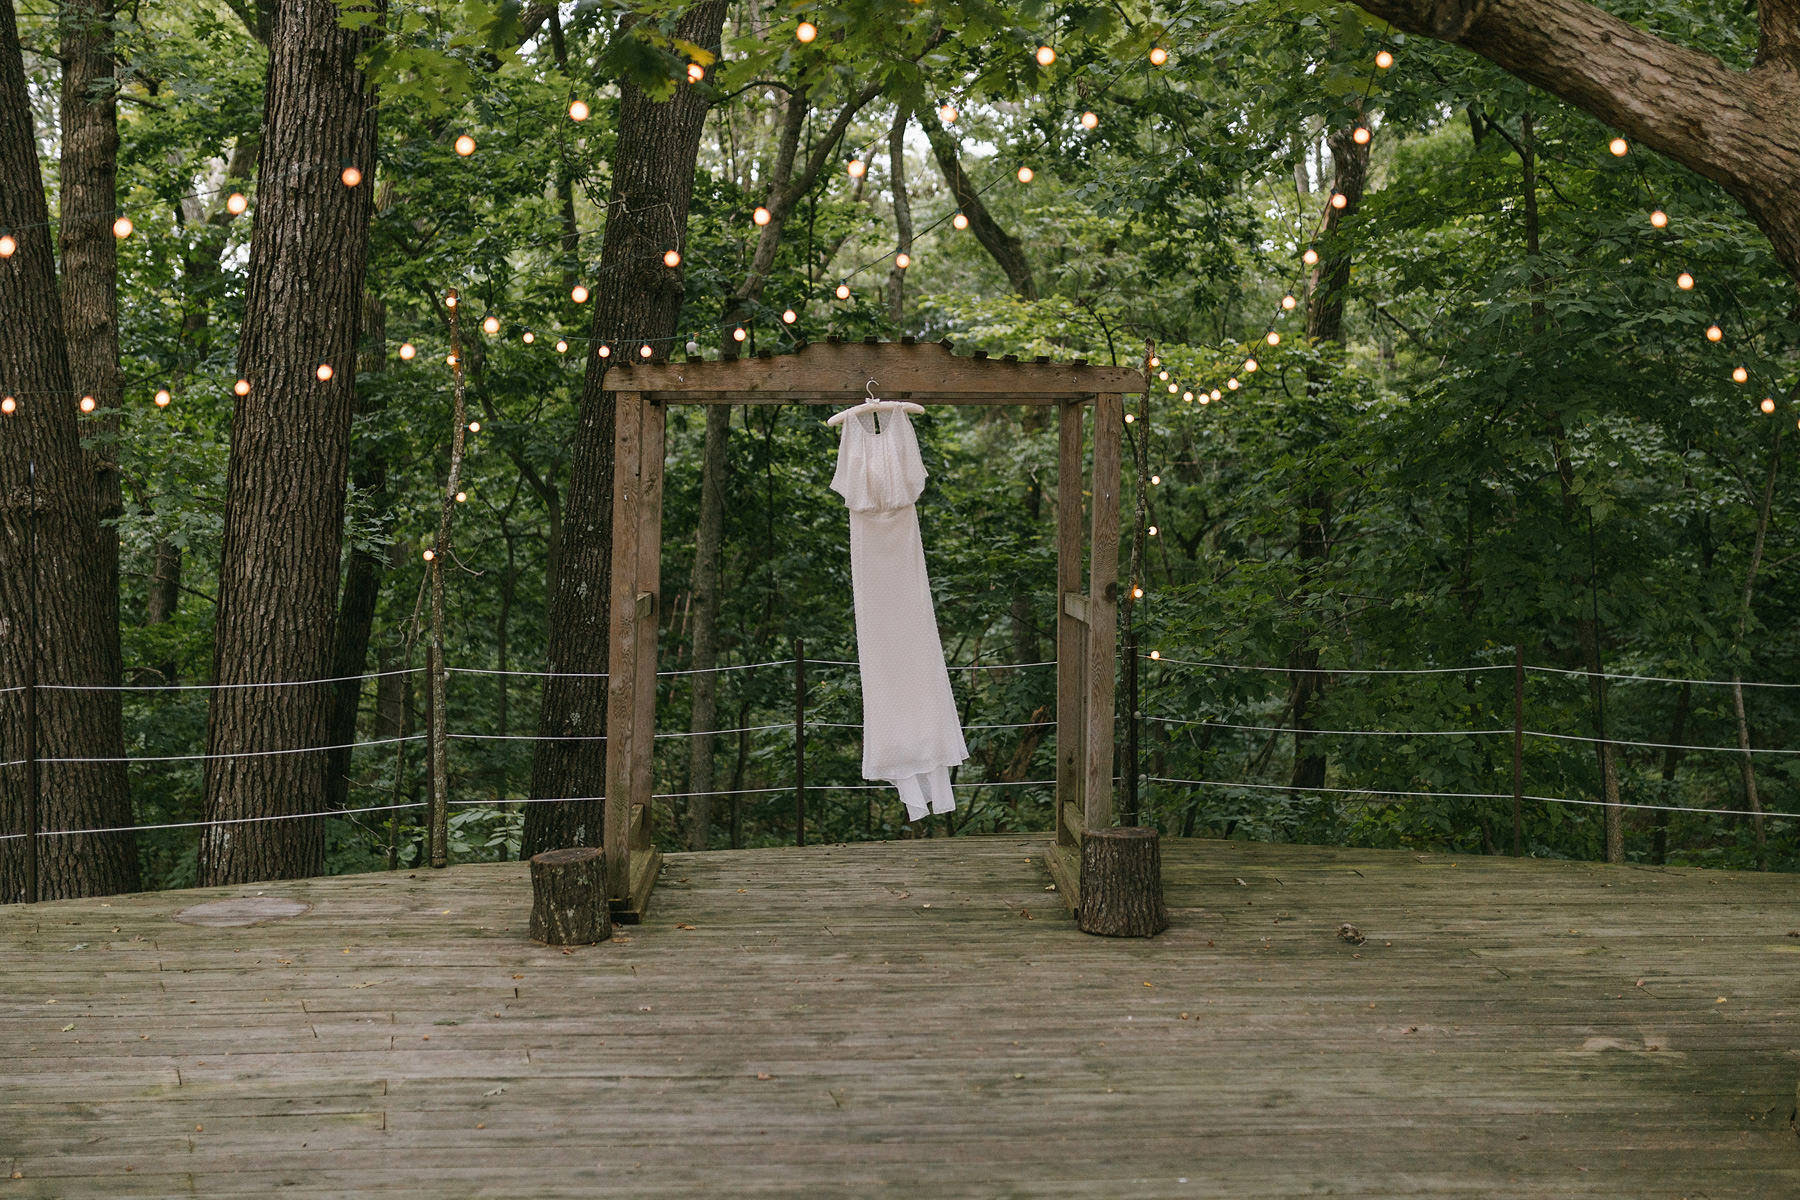 274_Blackberry Creek Outdoor Ozarks Wedding Springfield, Missouri_Kindling Wedding Photography.JPG